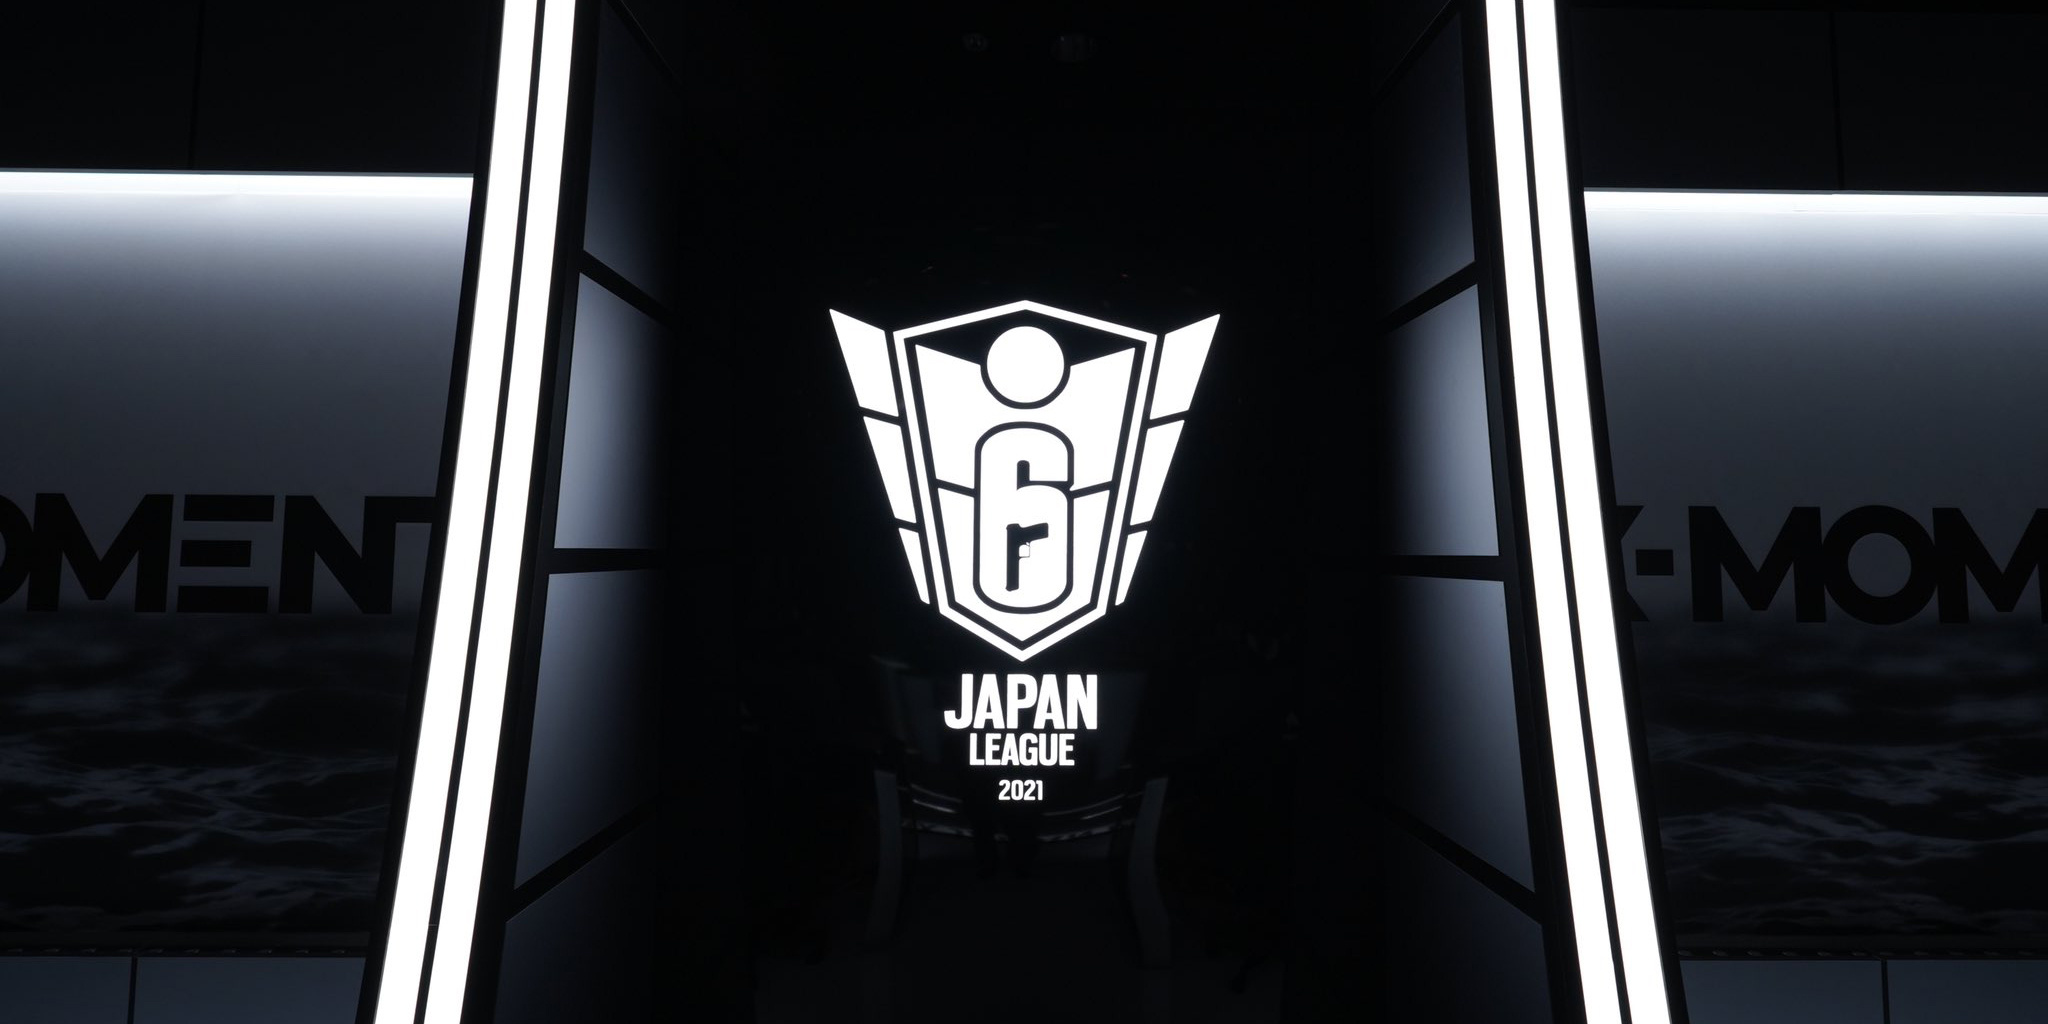 Japan League Week 7 and 8: CAG Continues Flawless Run, Sengoku in Hot Pursuit